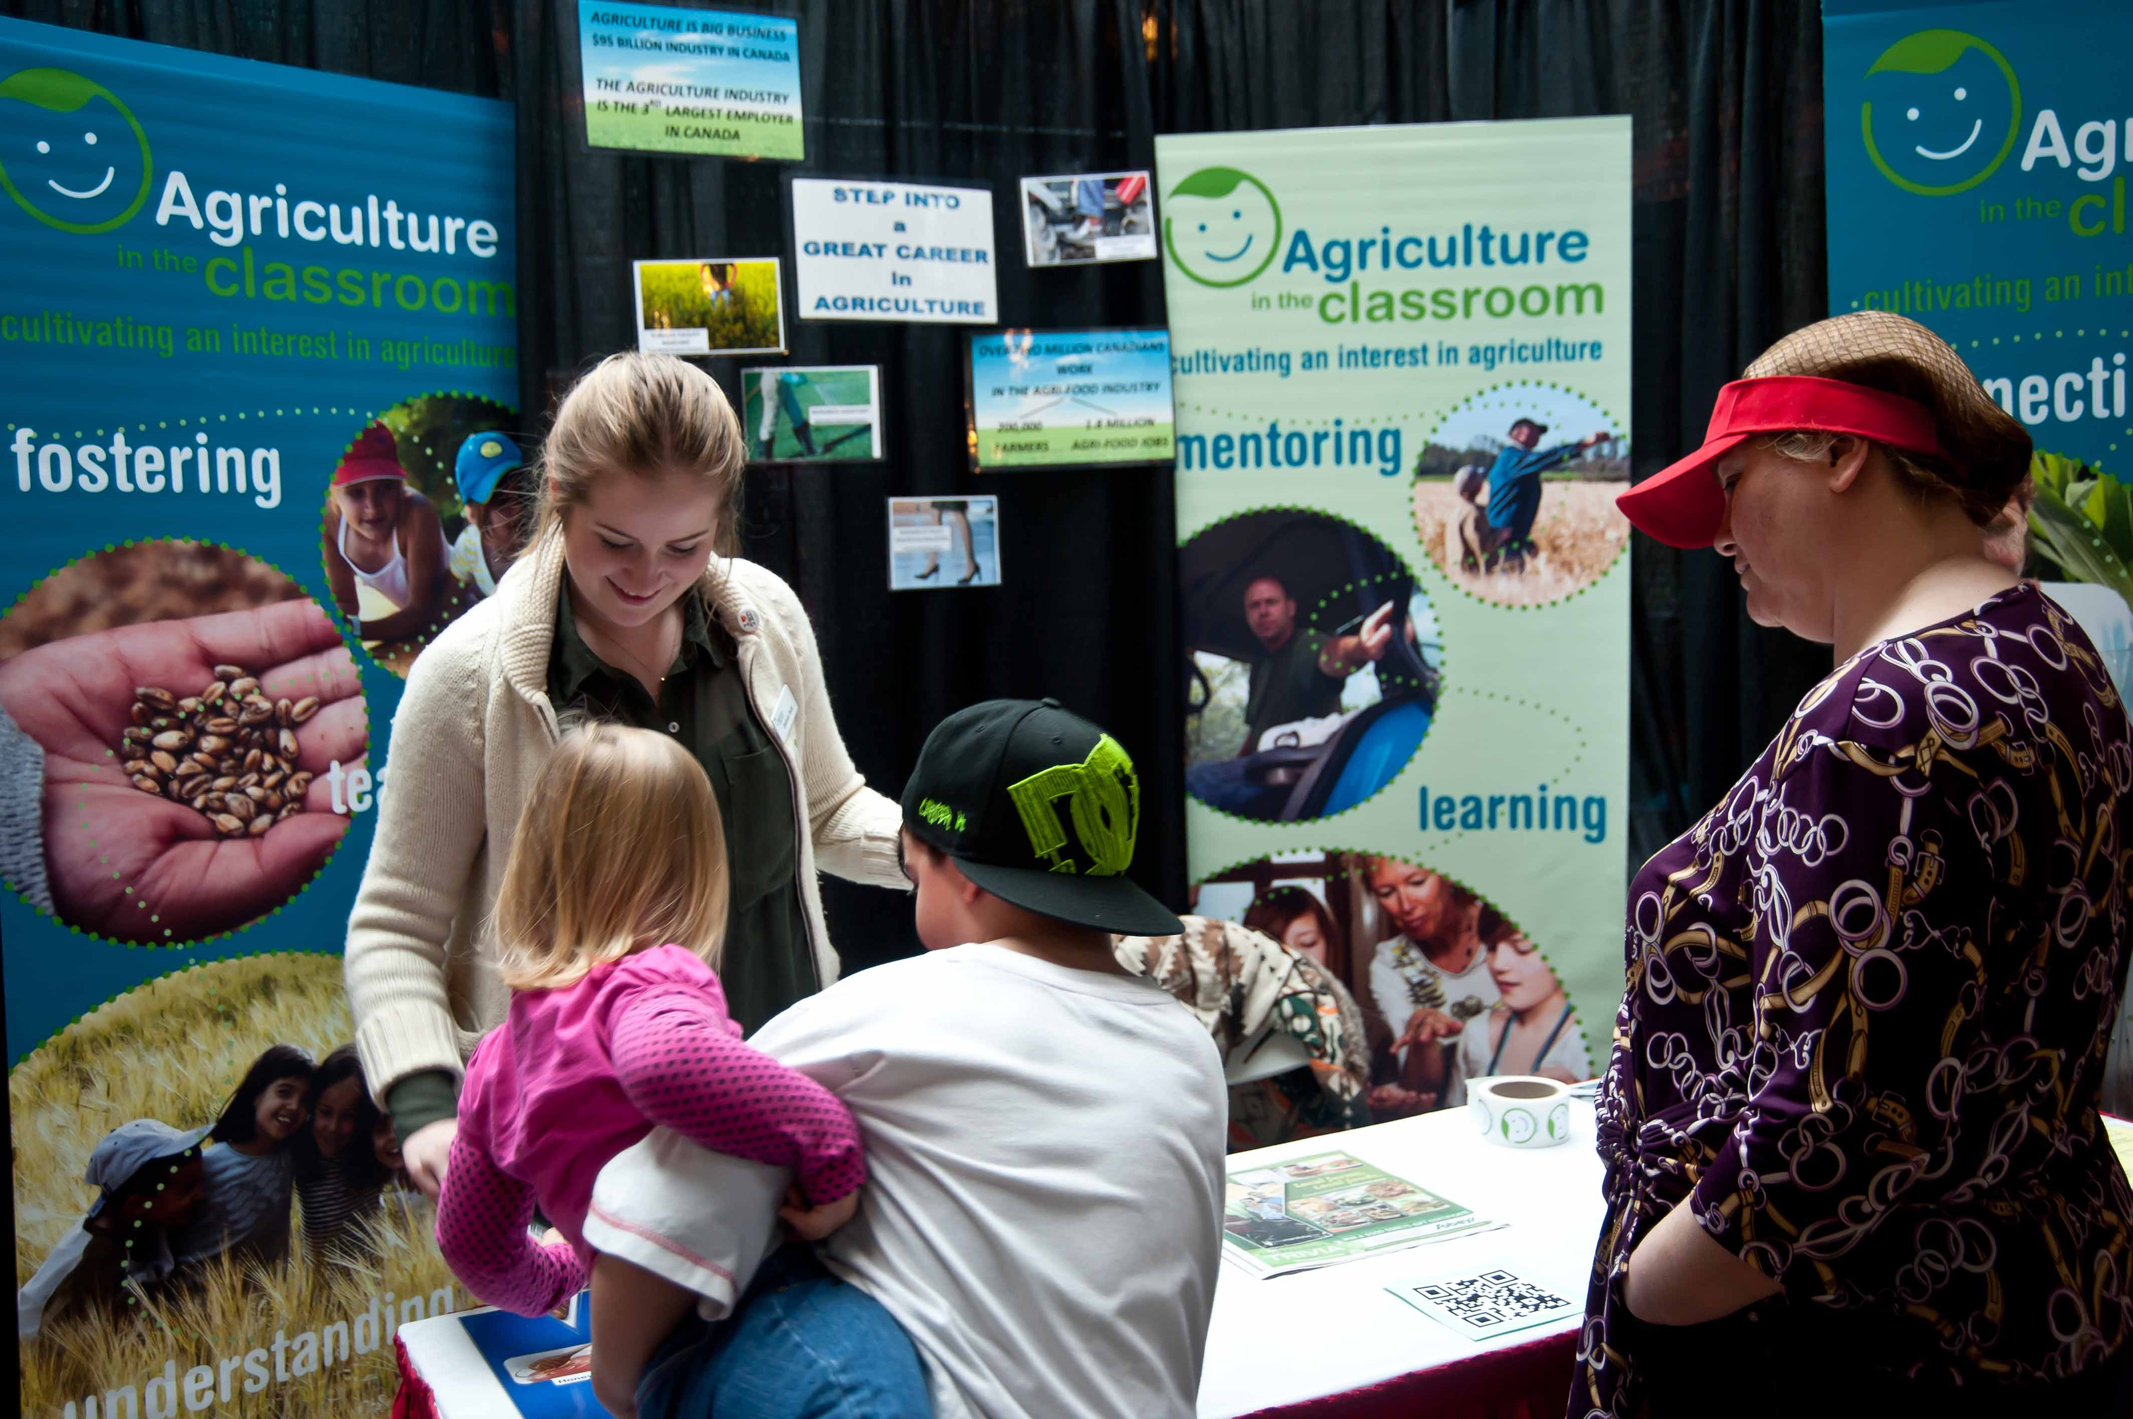 Vistors learn about the function of the Ag in the Classroom program in Manitoba.